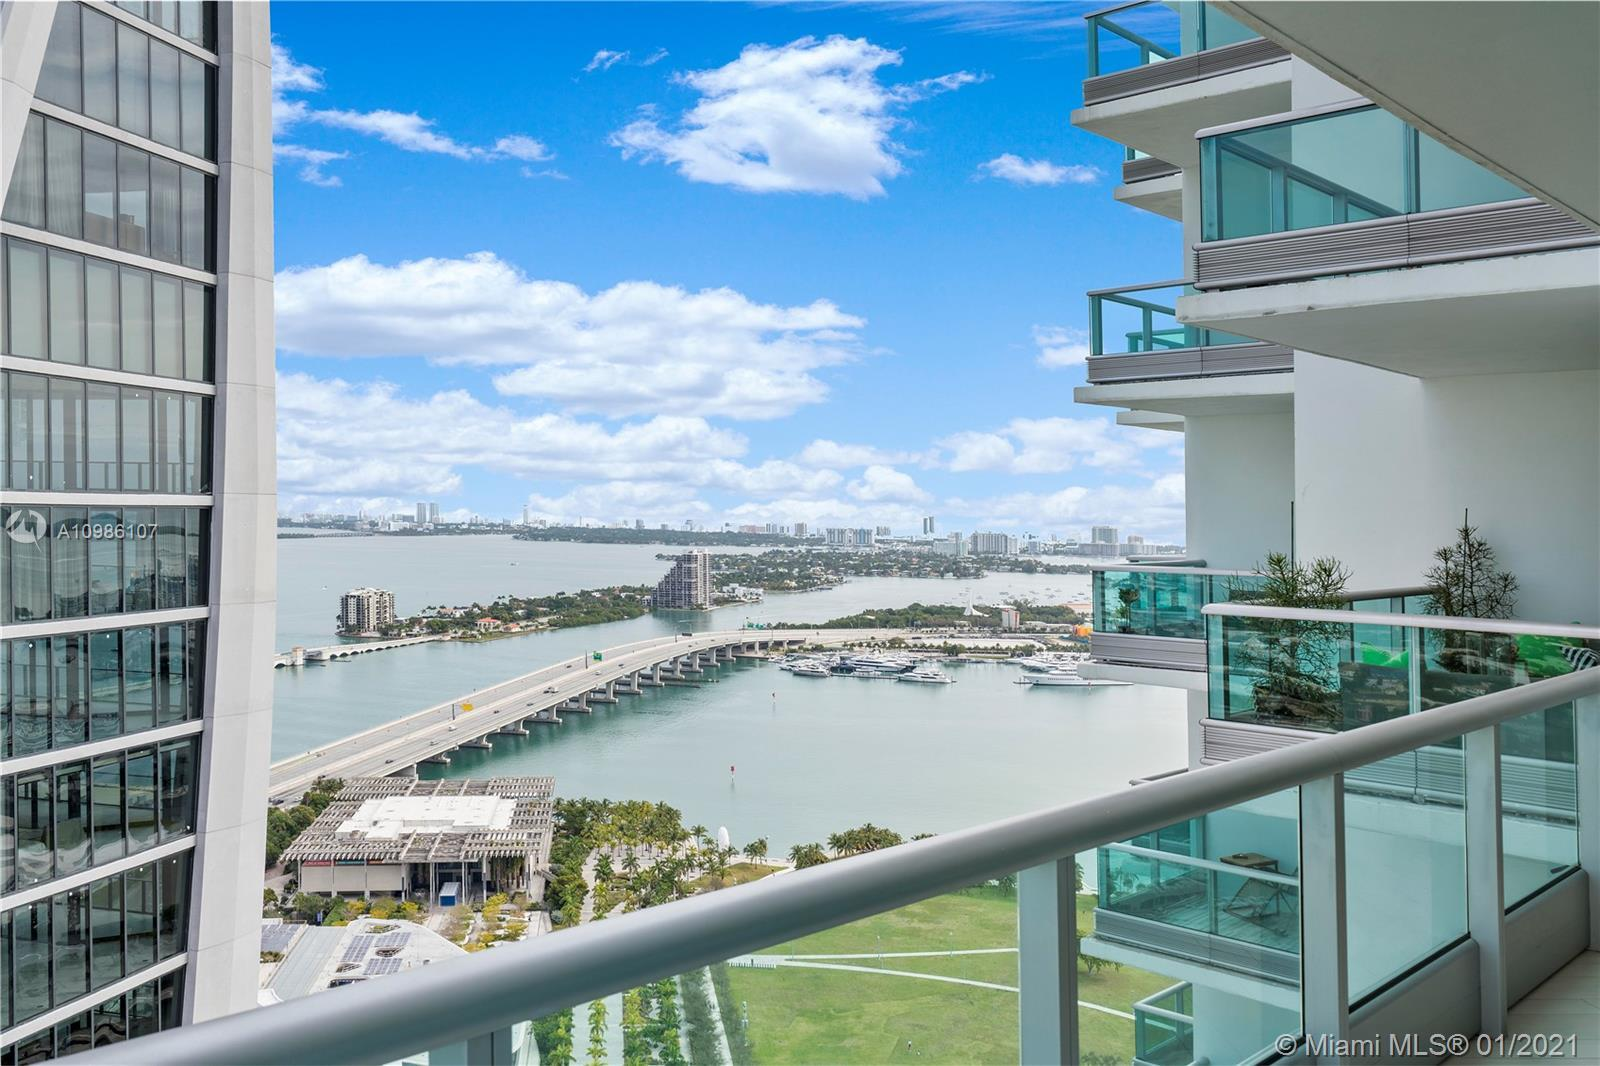 Super clean unit with city, bay and ocean views at 900 Biscayne. Marble countertops/island and fresh